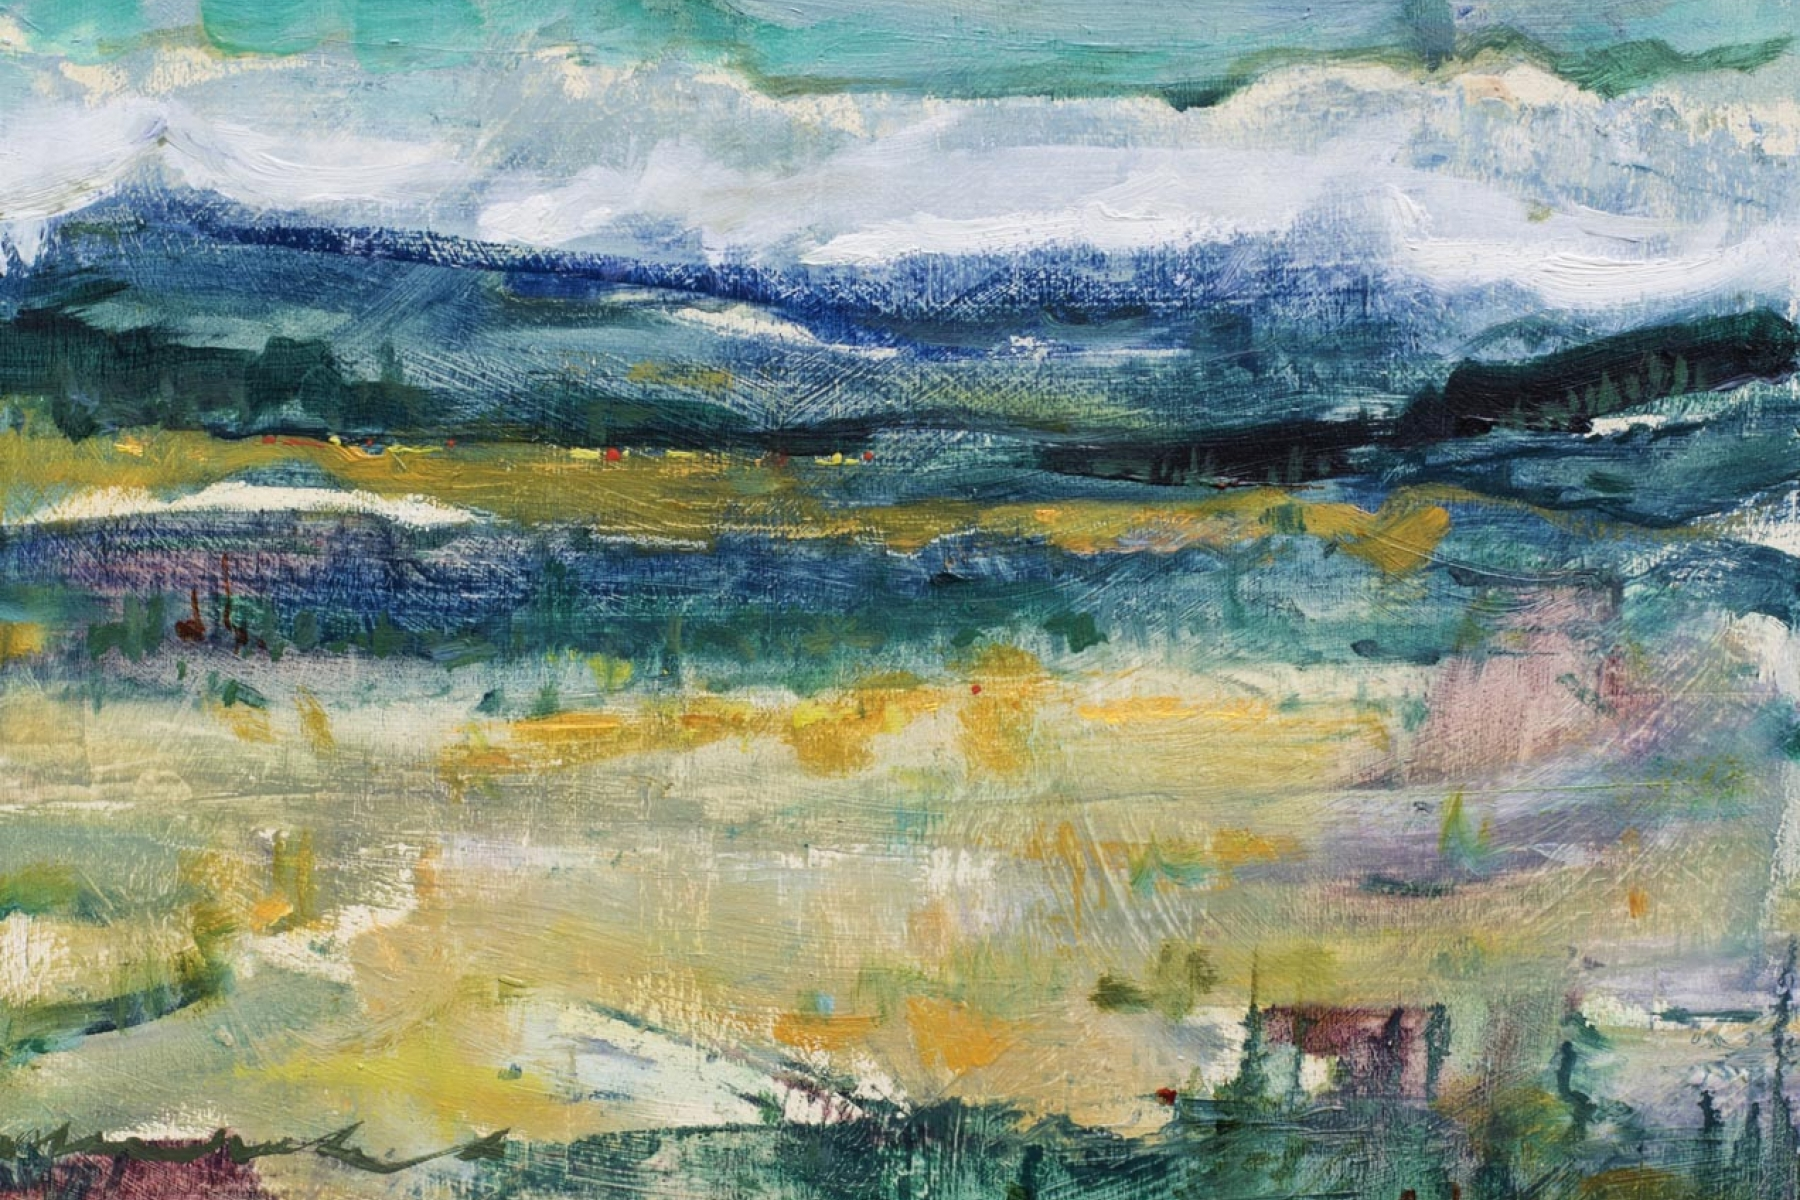 the olde west | dreamscapes | Artist painter Kim Pollard | Canada | Pacific Northwest